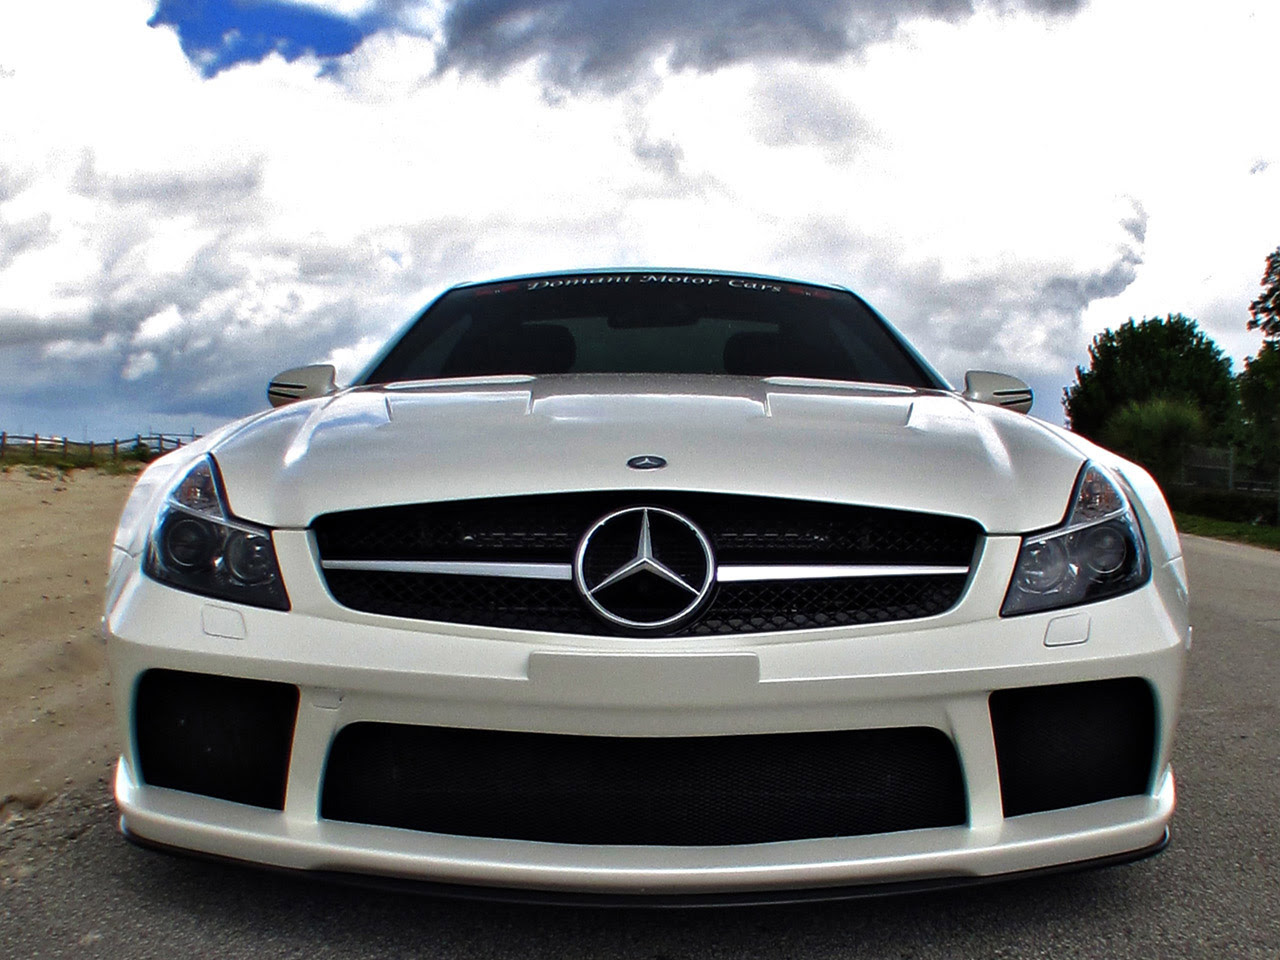 Car in pictures - car photo gallery » RENNtech Mercedes ...